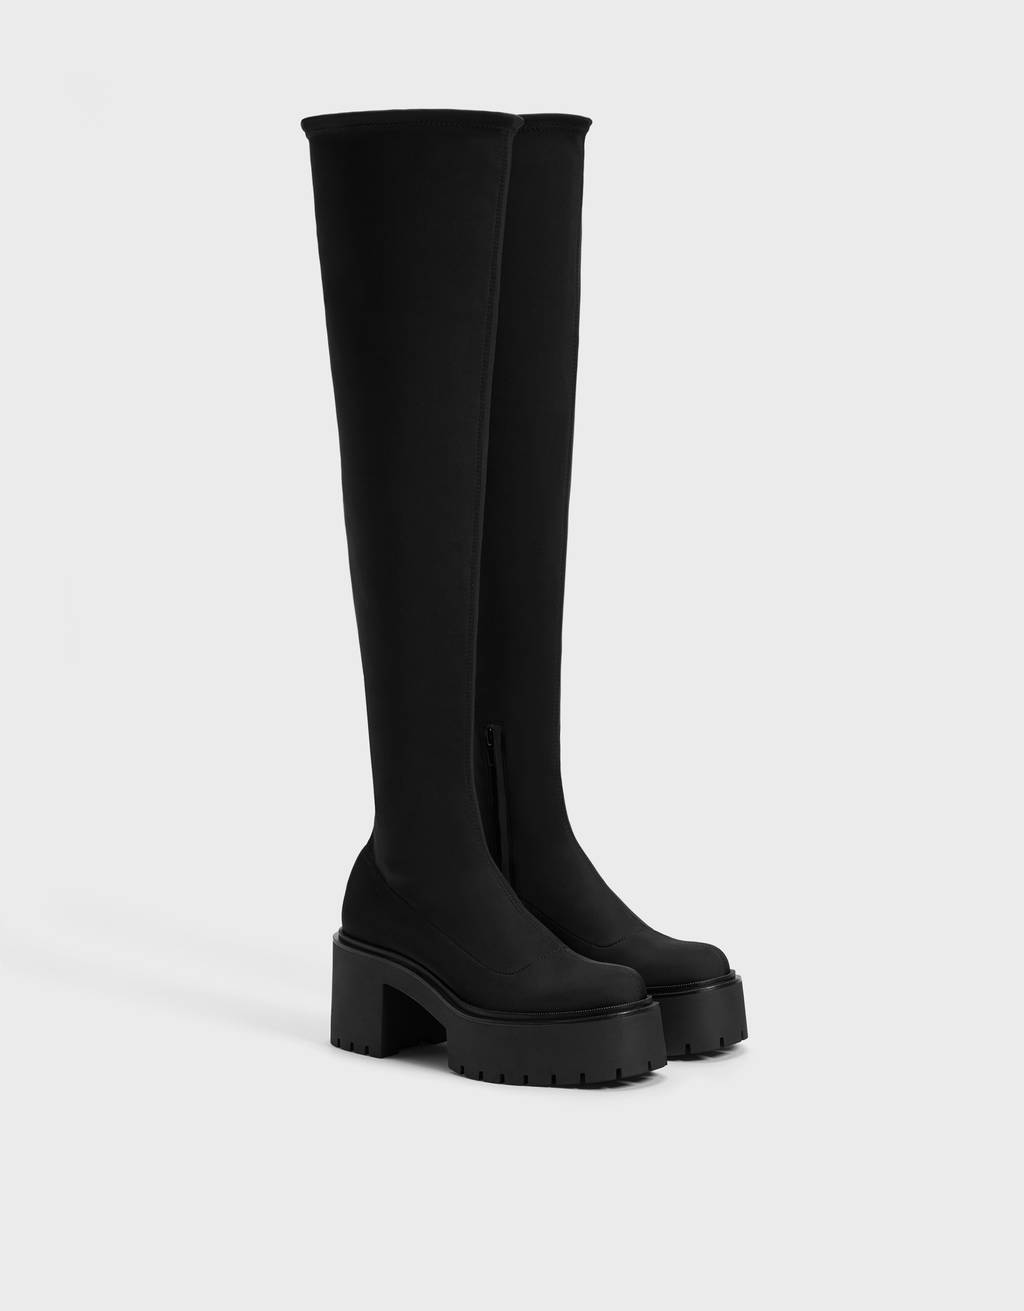 Platform boots with technical material